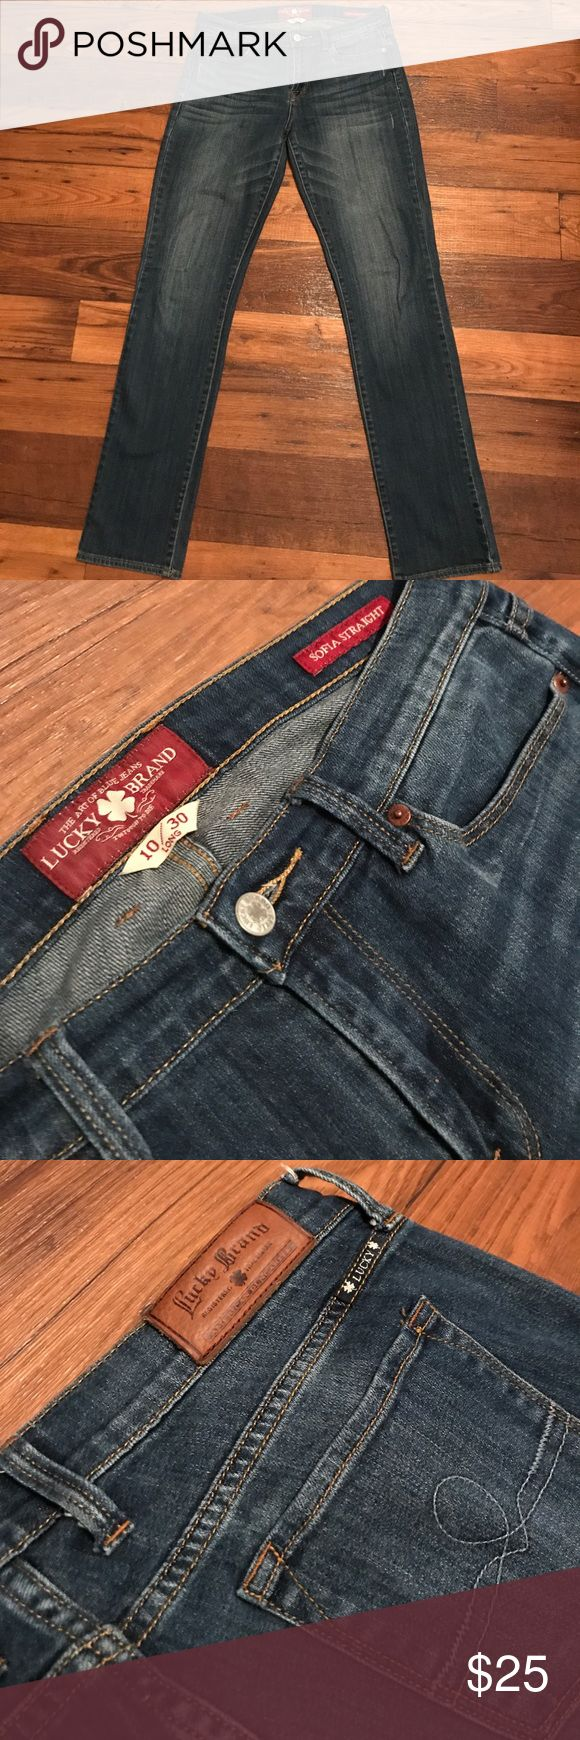 Lucky Brand Sofia Straight Cut Jeans Straight cut, medium wash jeans in 10/30 long fit. Minor distress details. Lucky Brand Jeans Straight Leg